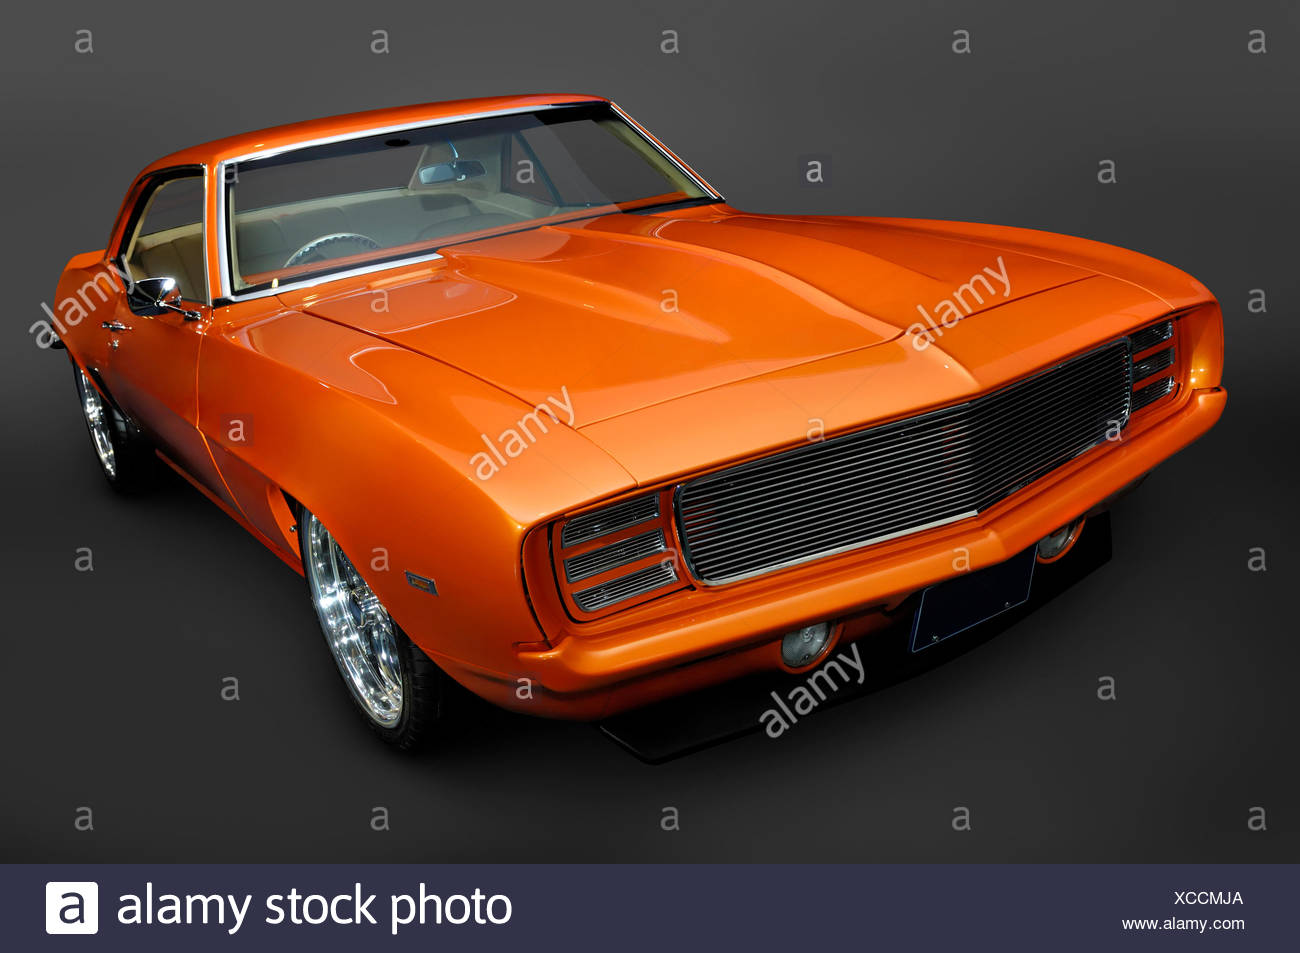 1969 Chevrolet Camaro Rs Ss Classic Vintage Muscle Car Stock Photo